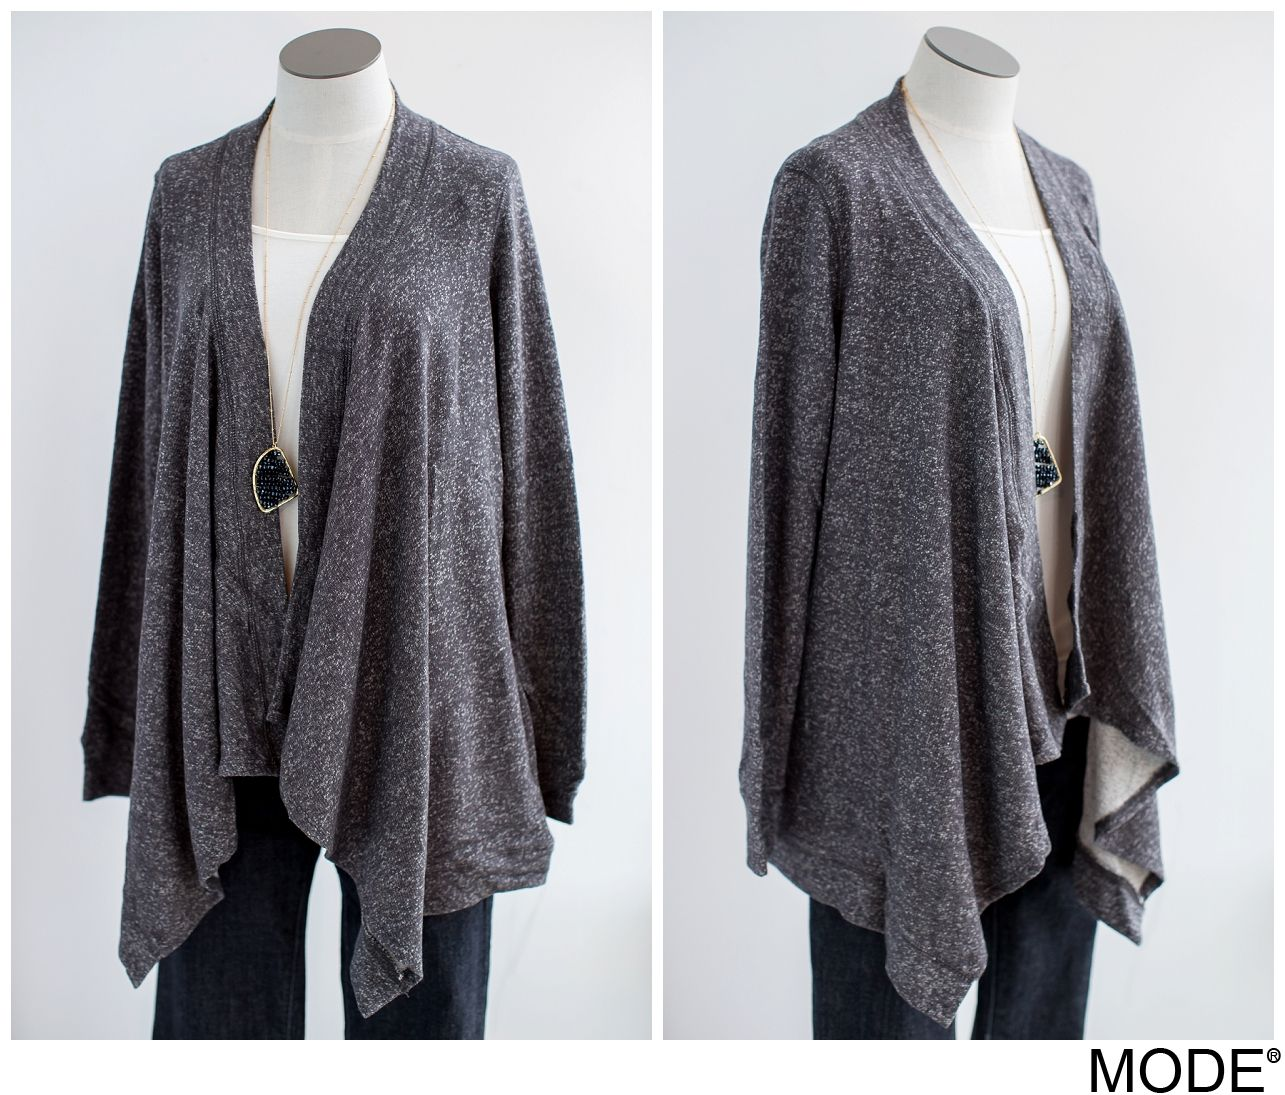 MODE Price: $32.99. Visit our stores at www.shopmodestore.com